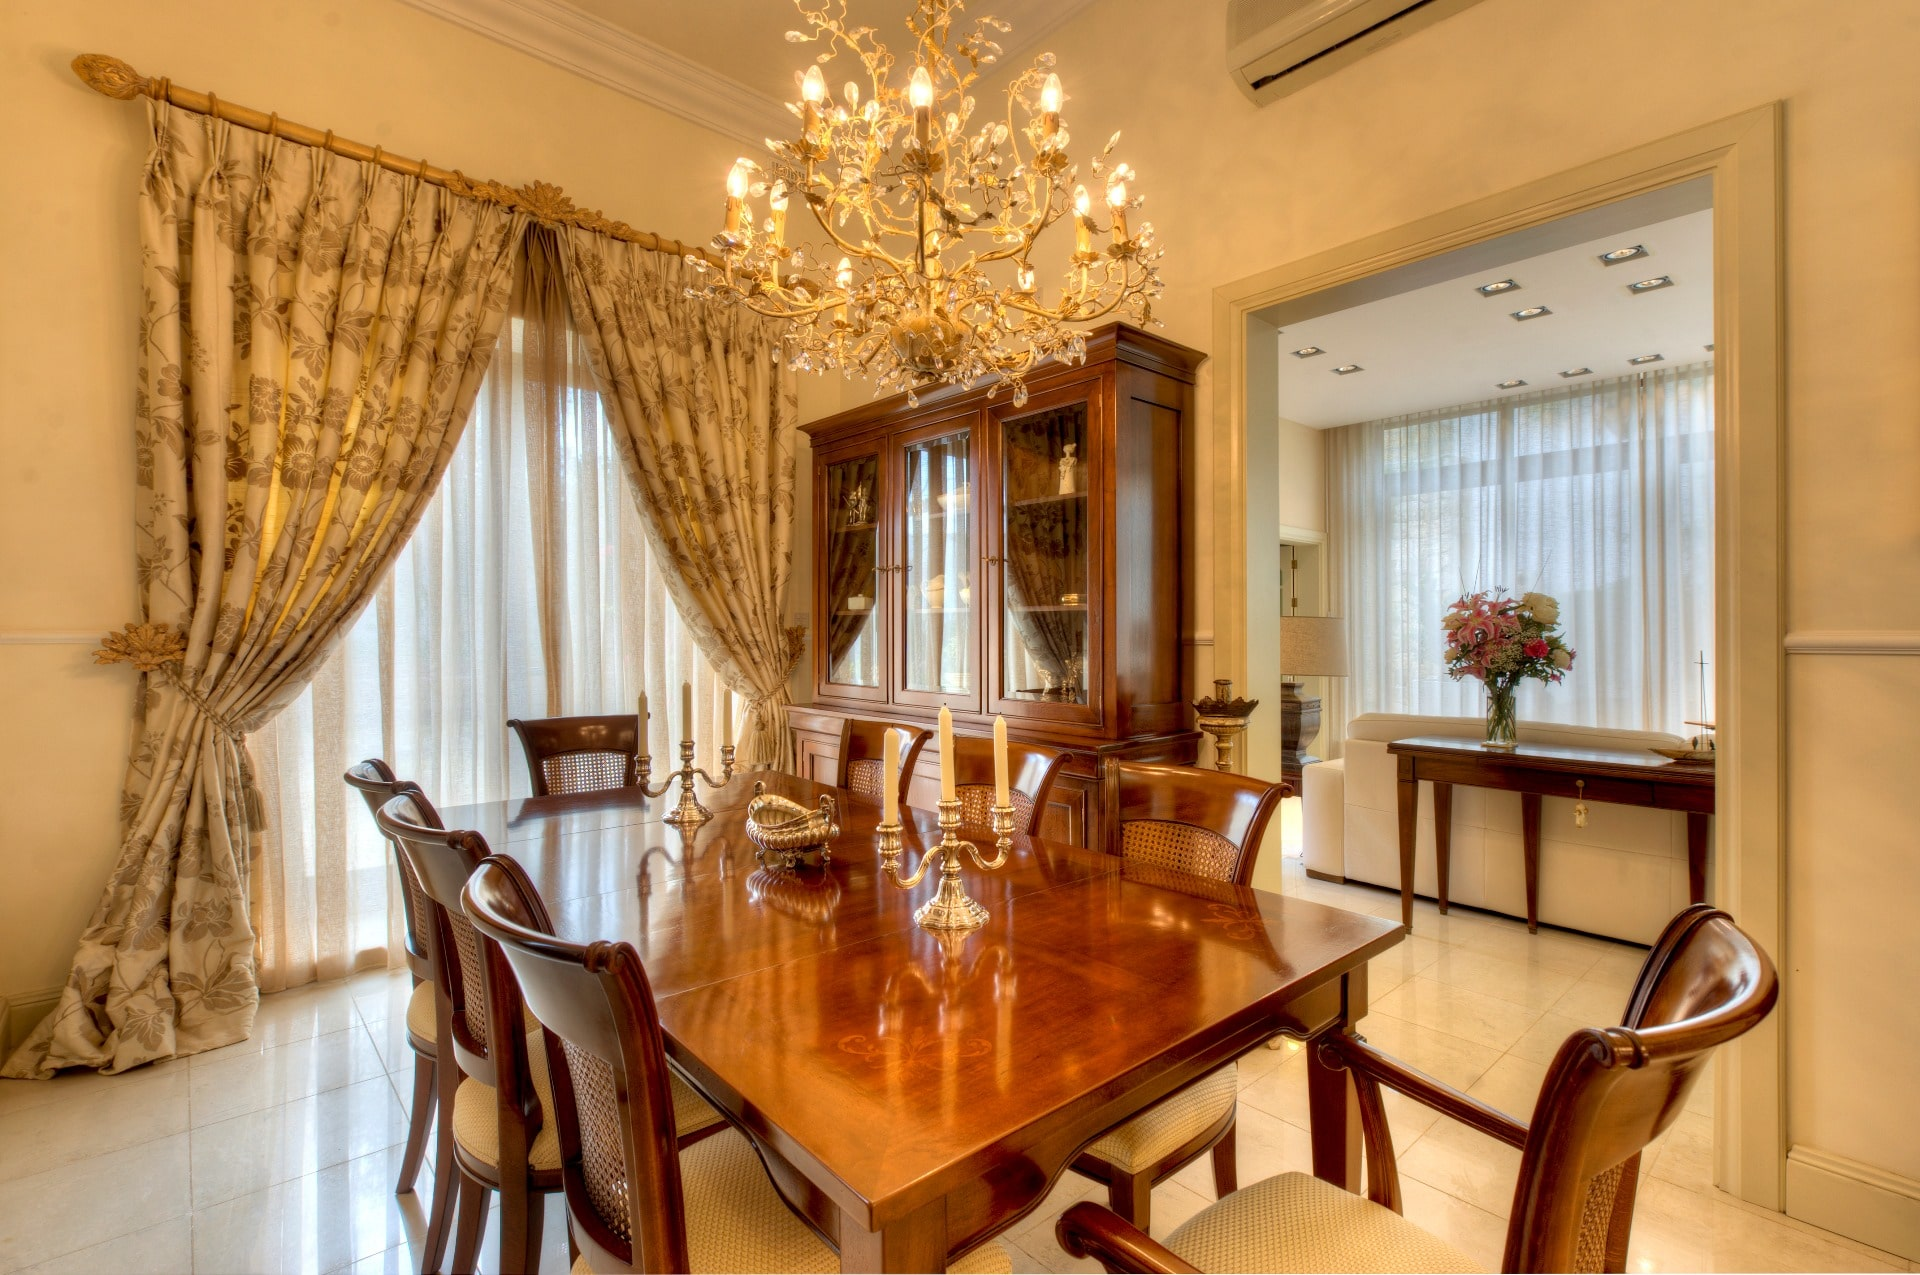 Dining Room – large table, antique chairs, gold tones, cream linens, marble floors, chandelier